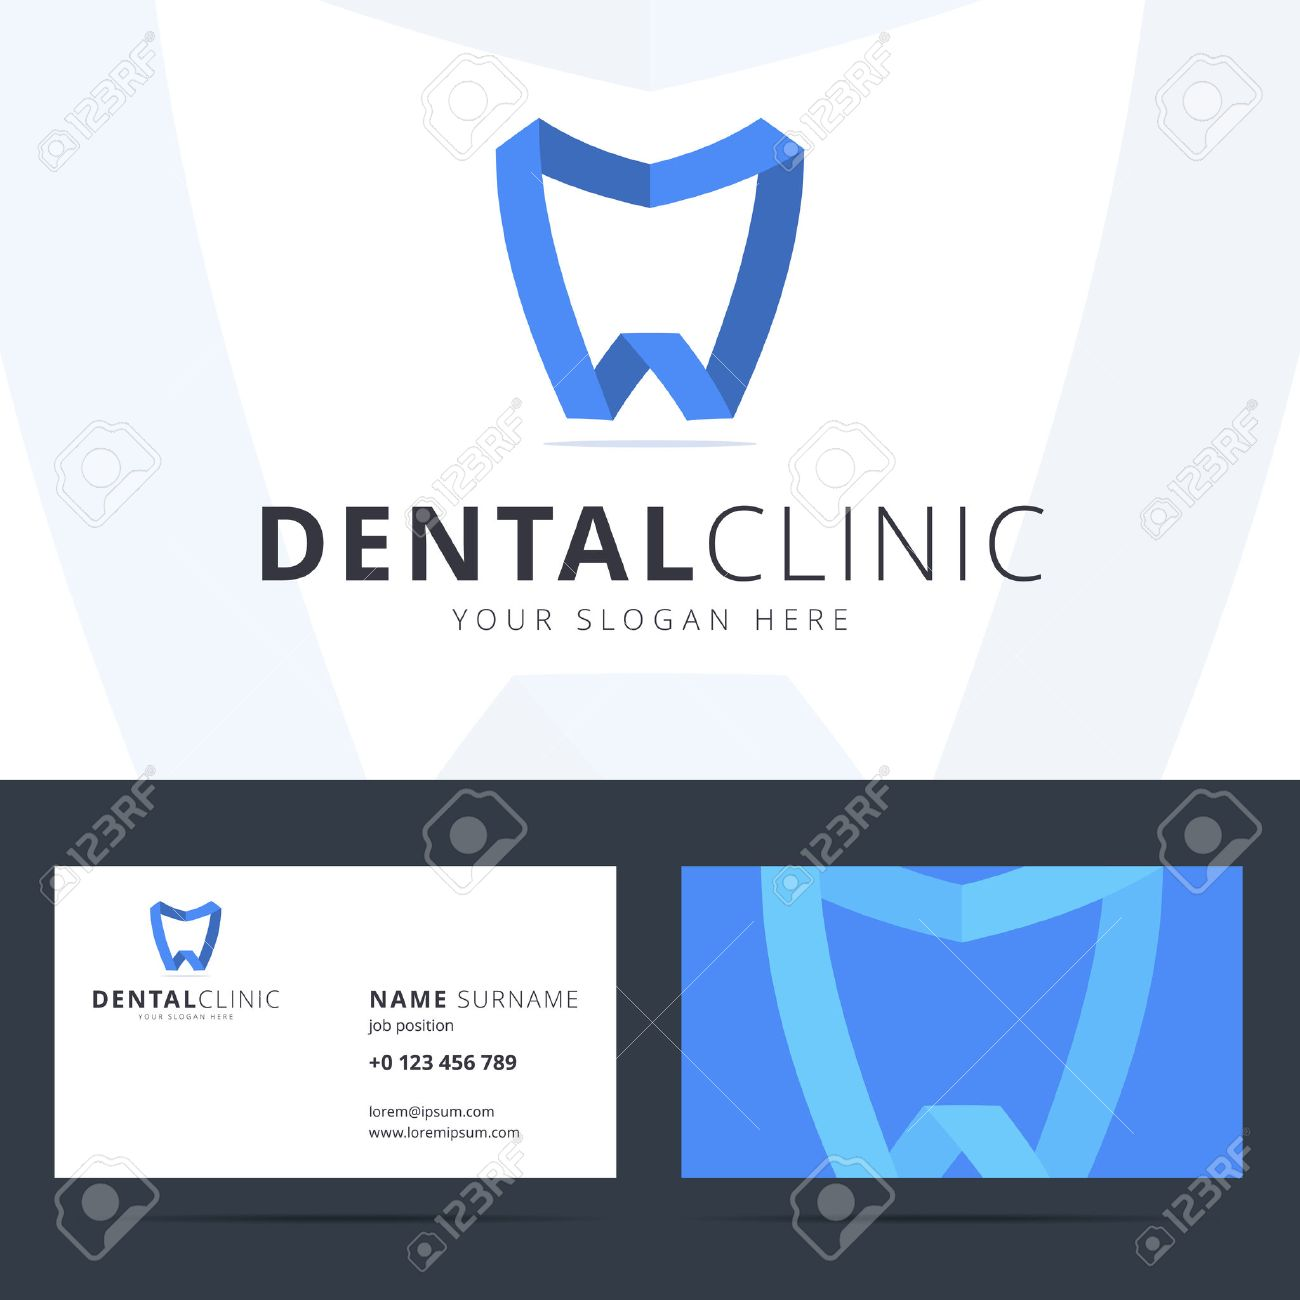 Dental business card designs gallery free business cards logo and business card template for dental clinic dental logo logo and business card template for magicingreecefo Gallery